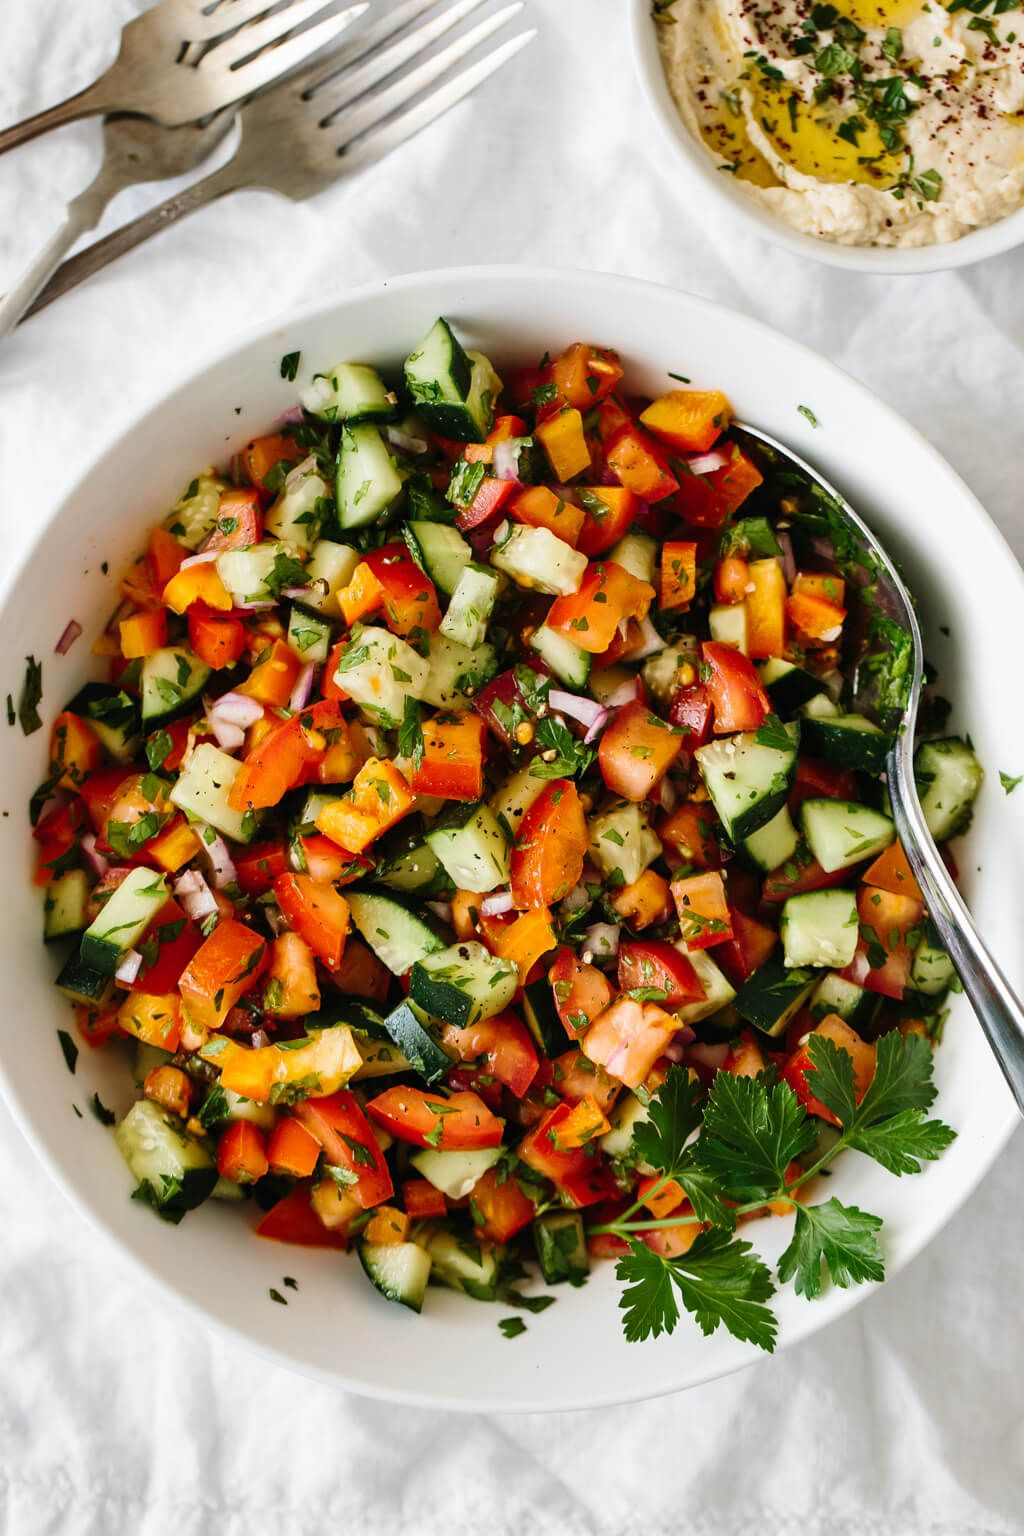 Israeli salad is an easy middle eastern salad recipe made